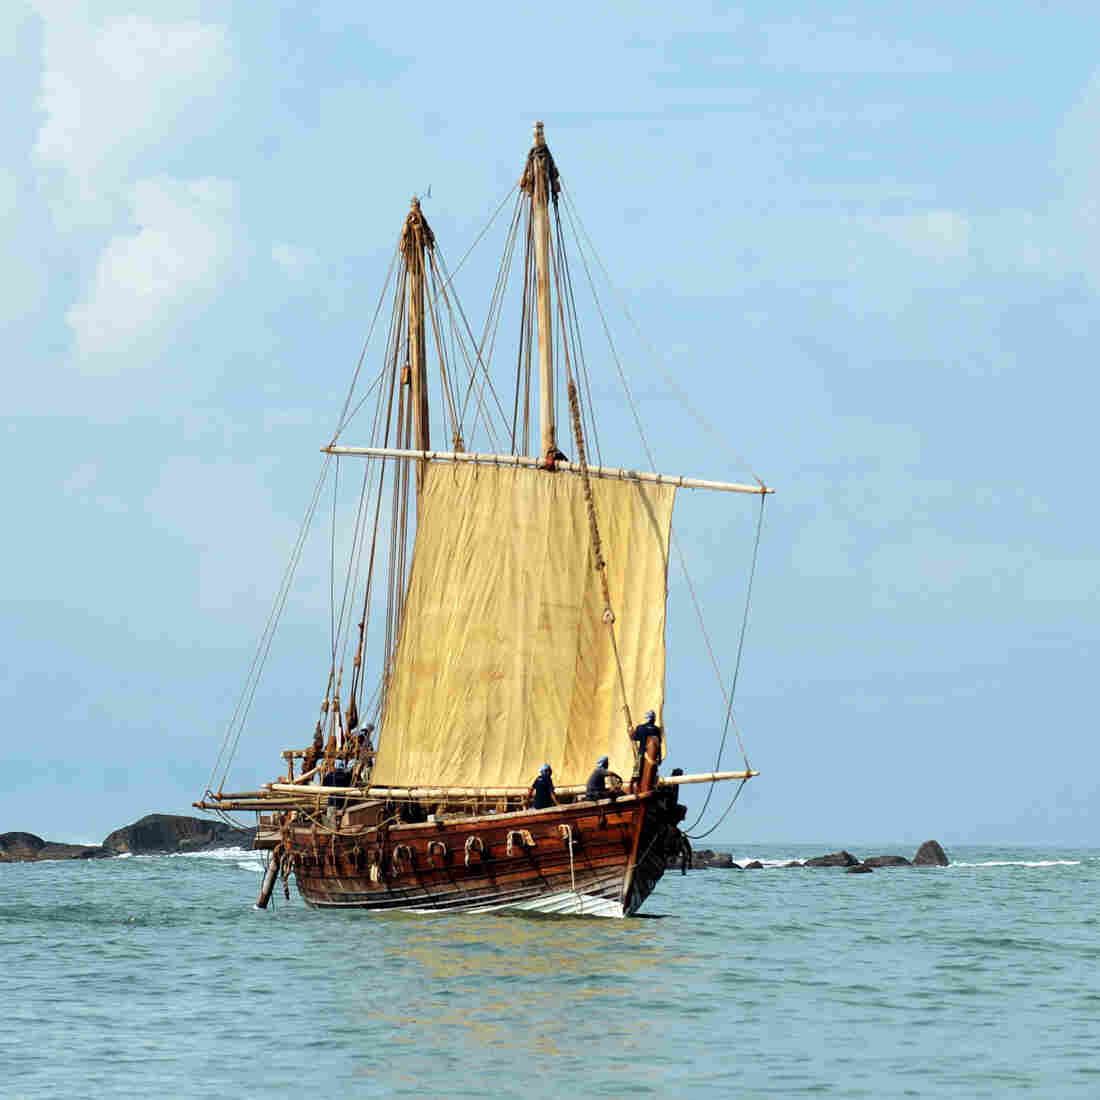 With Hand-Sewn Ships, Oman Revives A Glorious Maritime Past